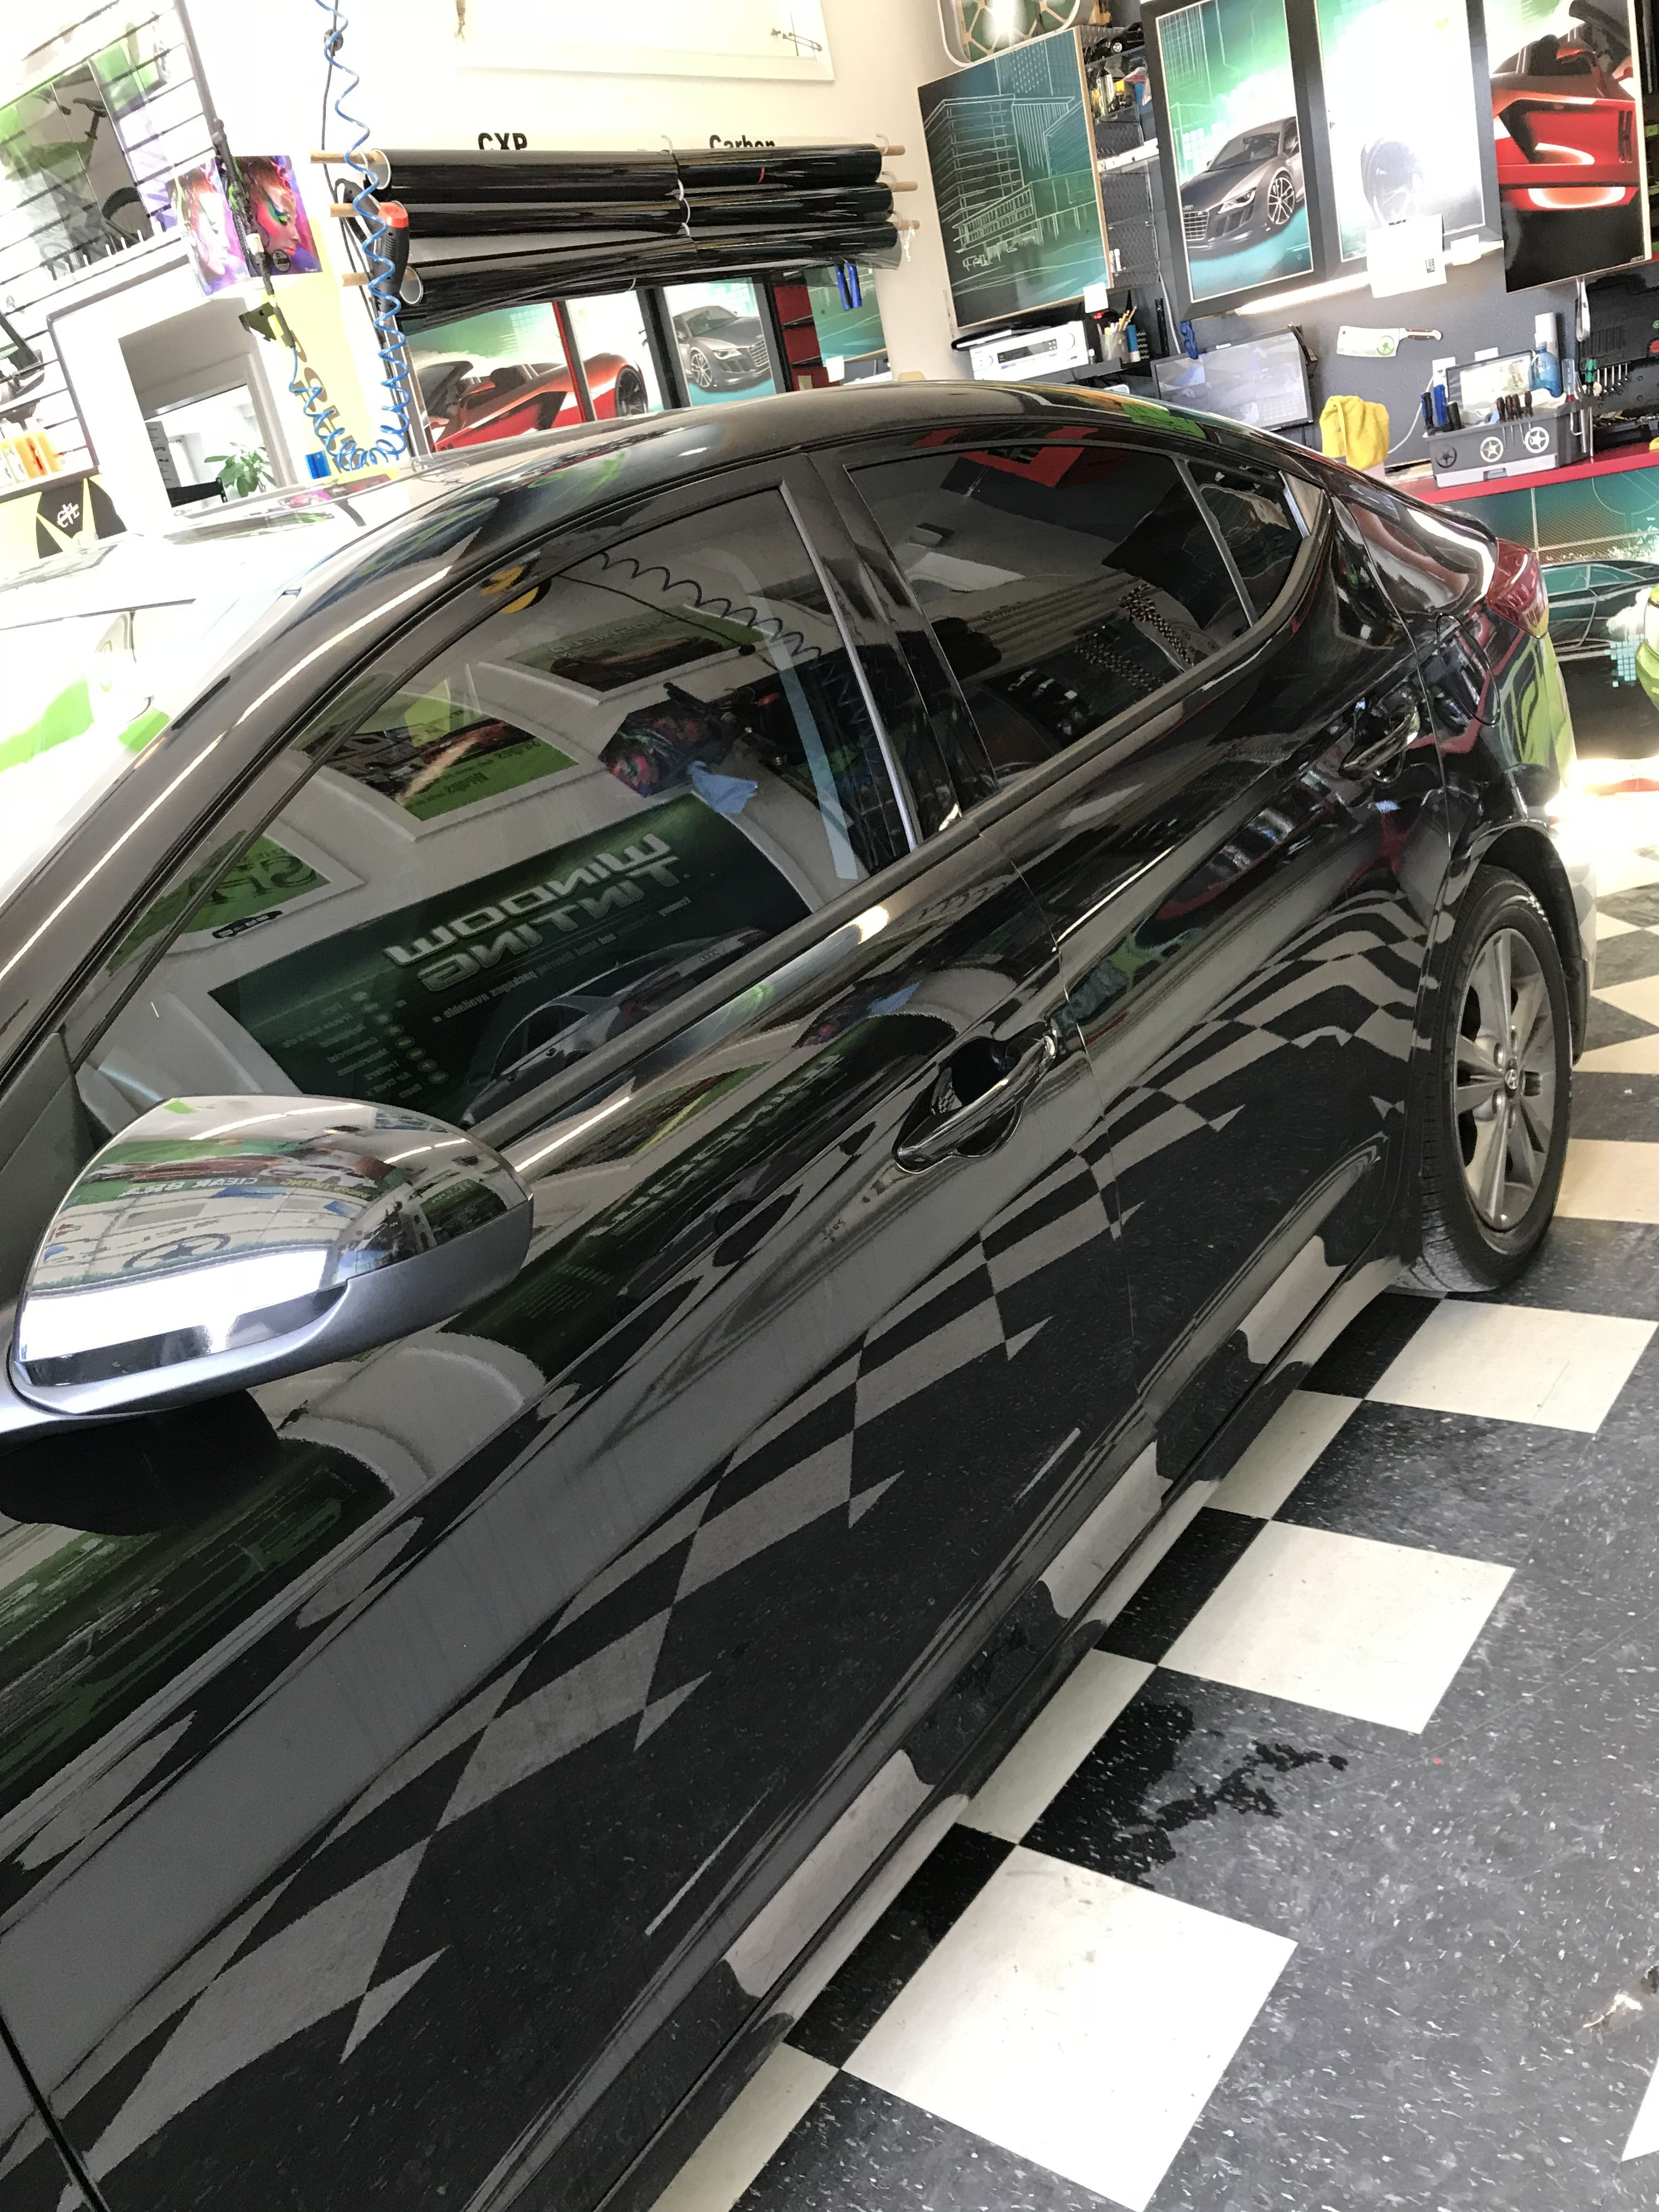 Just Did A Full Tint On This New Hyundai Elantra Looks Fresh Already Lots Of Heat Blockage And Uv Protection Better For The Interior Of The Car And Most Im